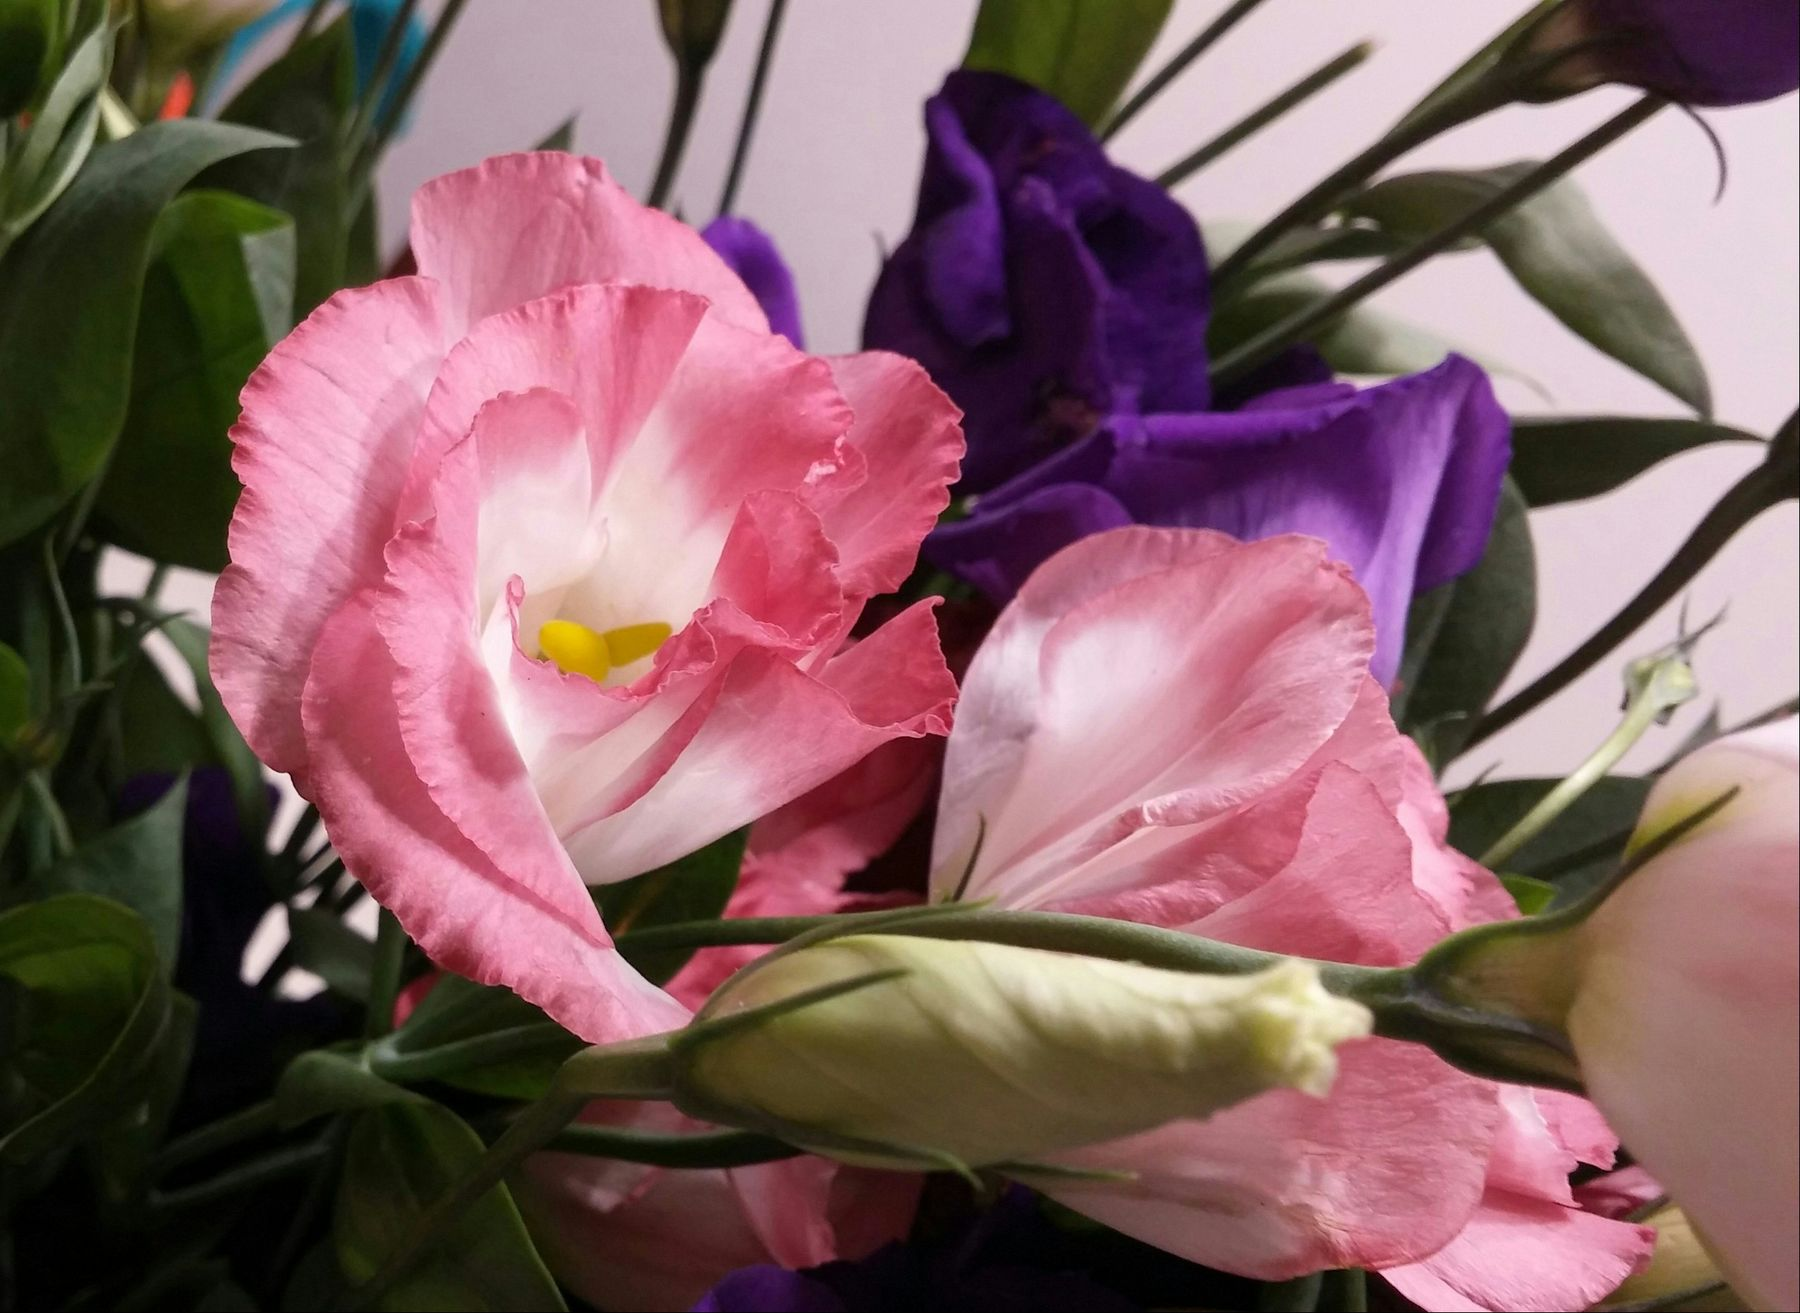 True colors. Happy Sunday my friends. Due to my belated summer vacation im so very late with my reply to you, hope to catch up soon 🙏🍂🌸🍂 Flower For The Friends Lisianthus Eustoma Pink Purple Flowers Make Me Smile!😜